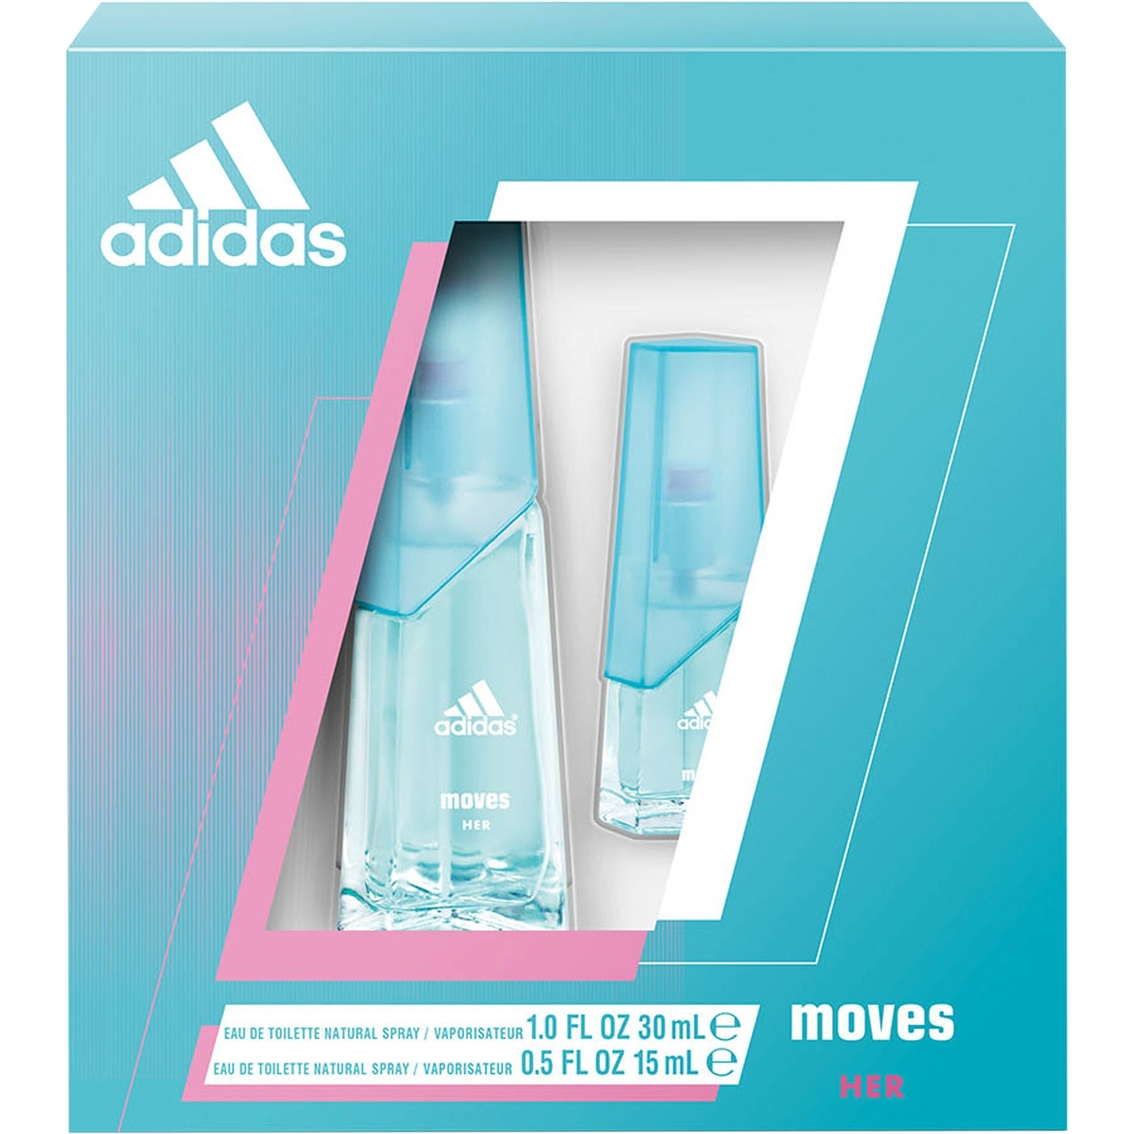 separation shoes 39b91 f93f0 adidas Moves for Her Gift Set 2 Pc.